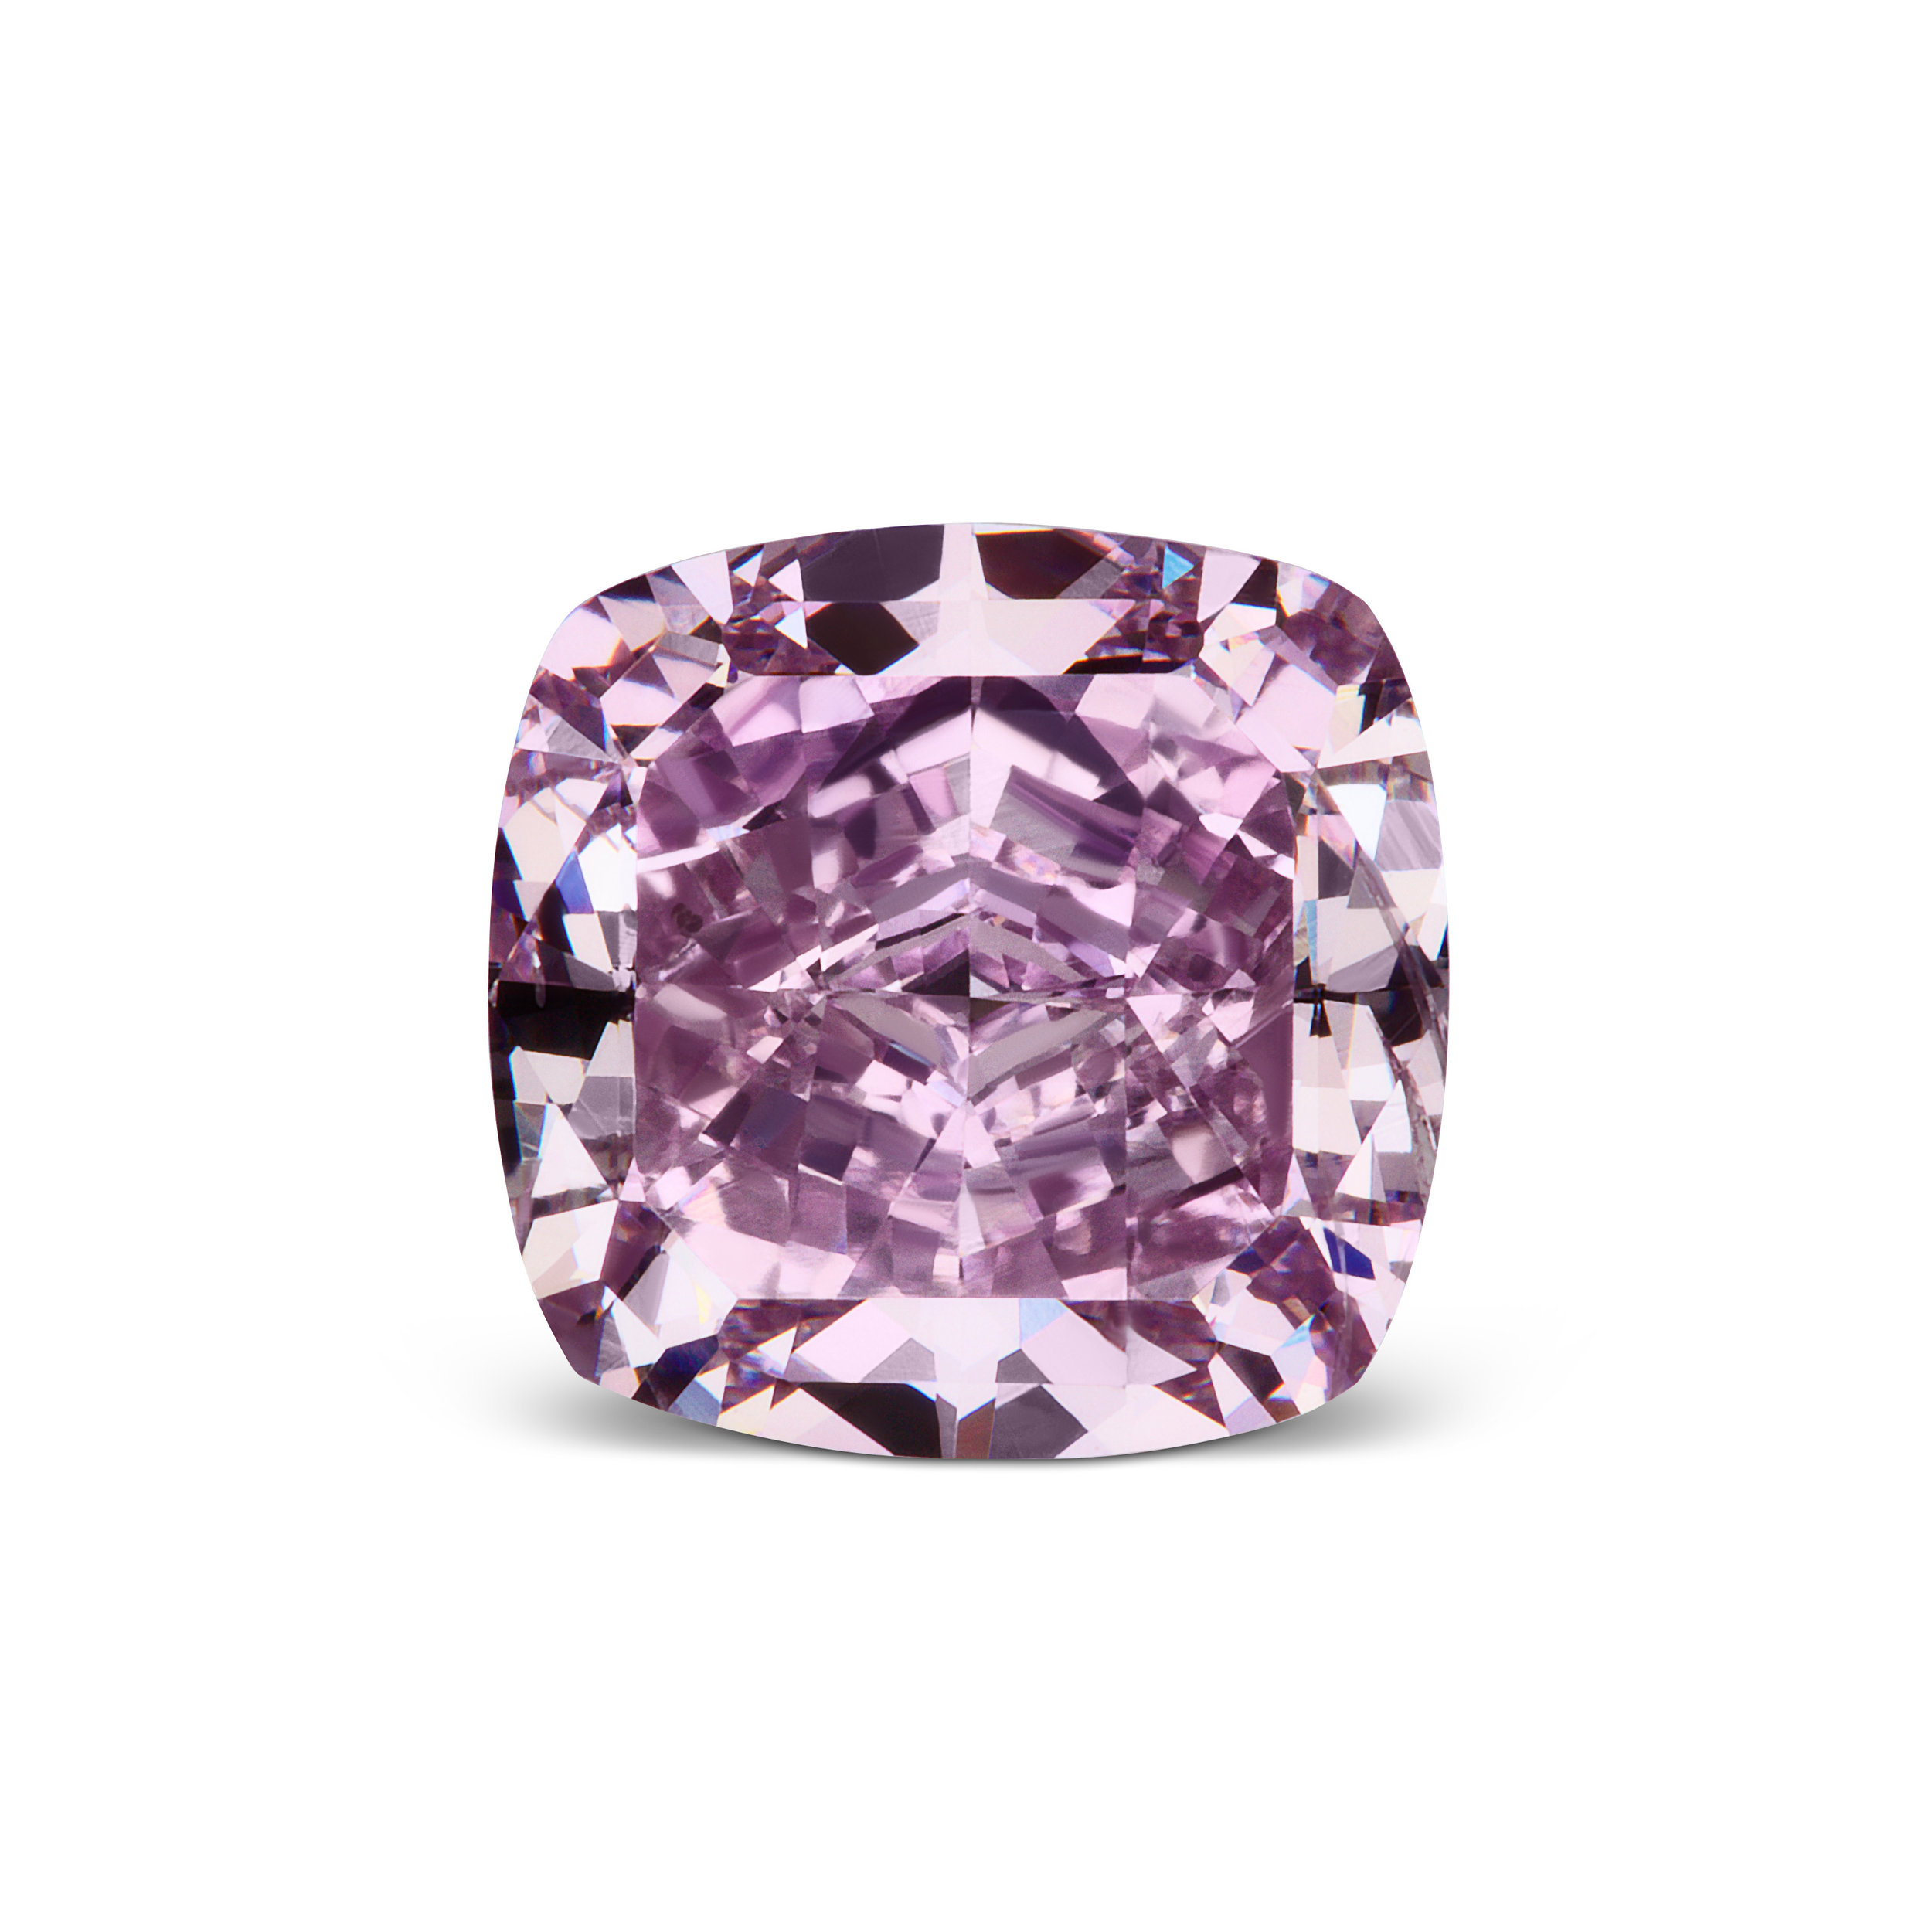 The Victorian Orchid Vivid Purple Diamond - Fancy Vivid Purple fashioned in a cushion-cut shaped at a noteworthy 1.64 carats